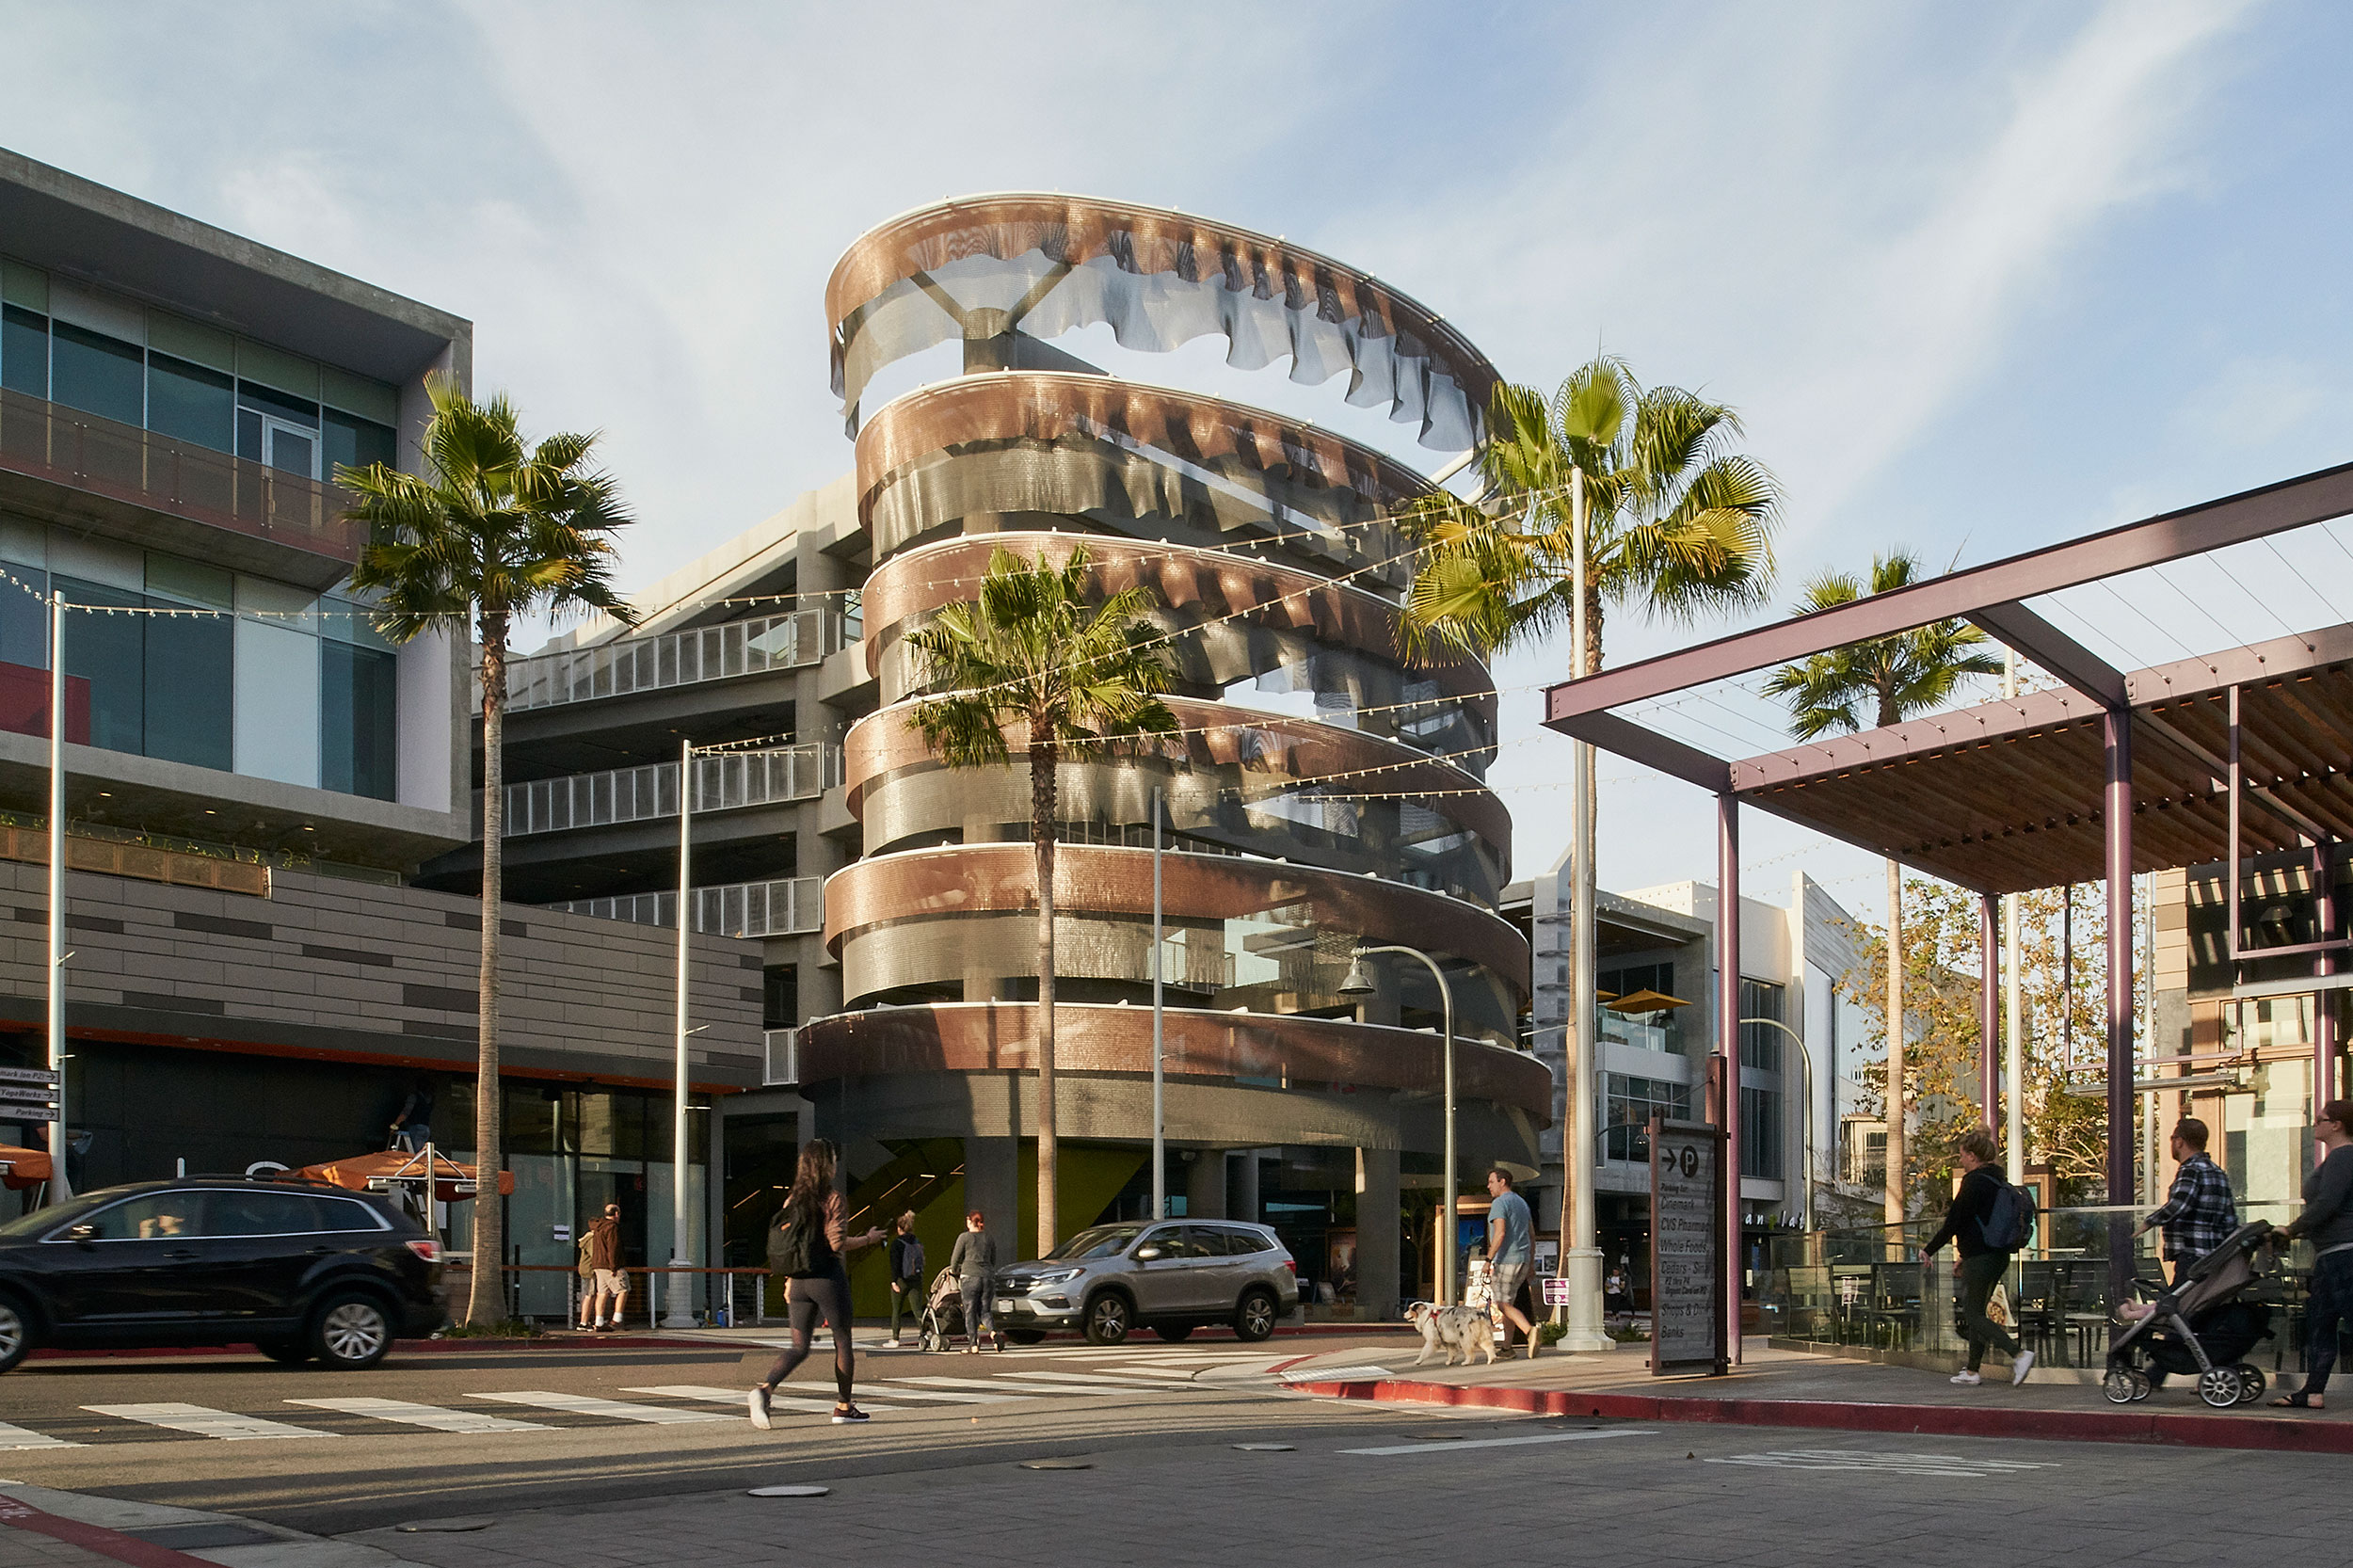 Kaynemaile Armour Kinetic Carpark Facade designed by Ned Kahn in Playa Vista, Los Angeles.  Photography  by  Fred L'Ami